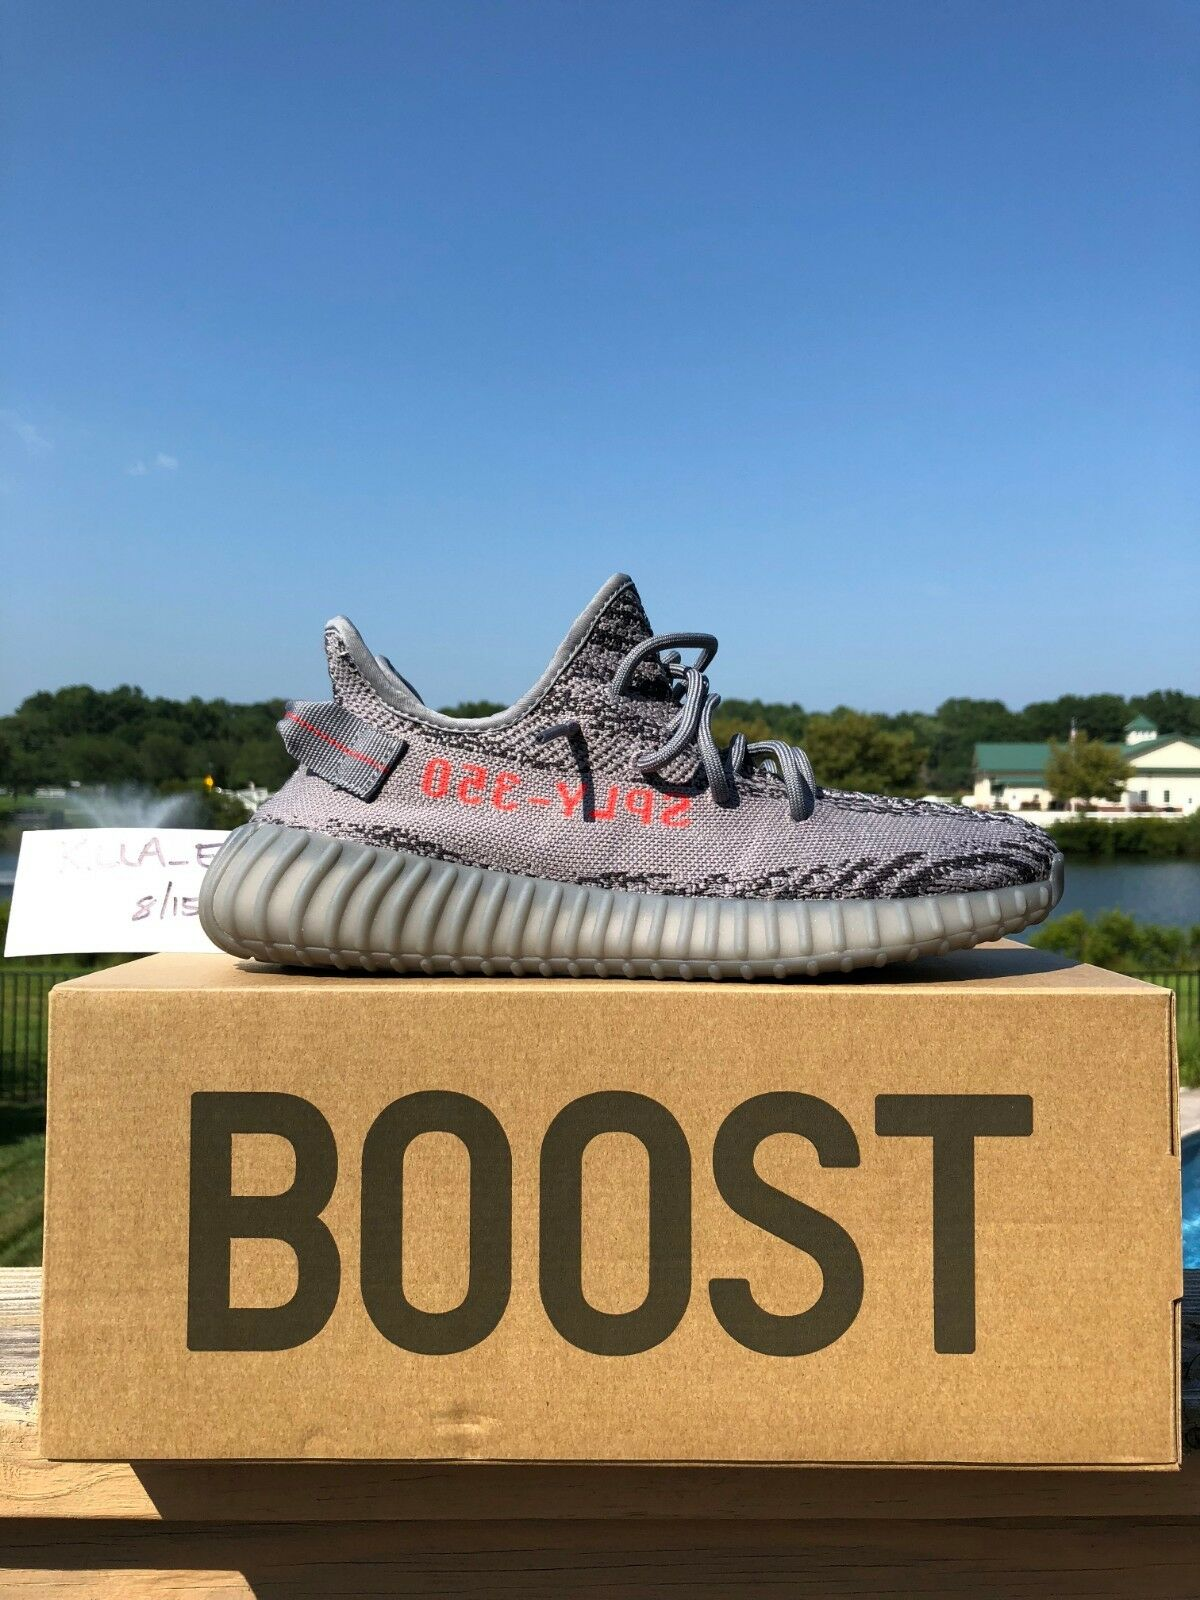 Yeezy Boost 350 V2 Size 9 AH2203 Beluga 2.0's